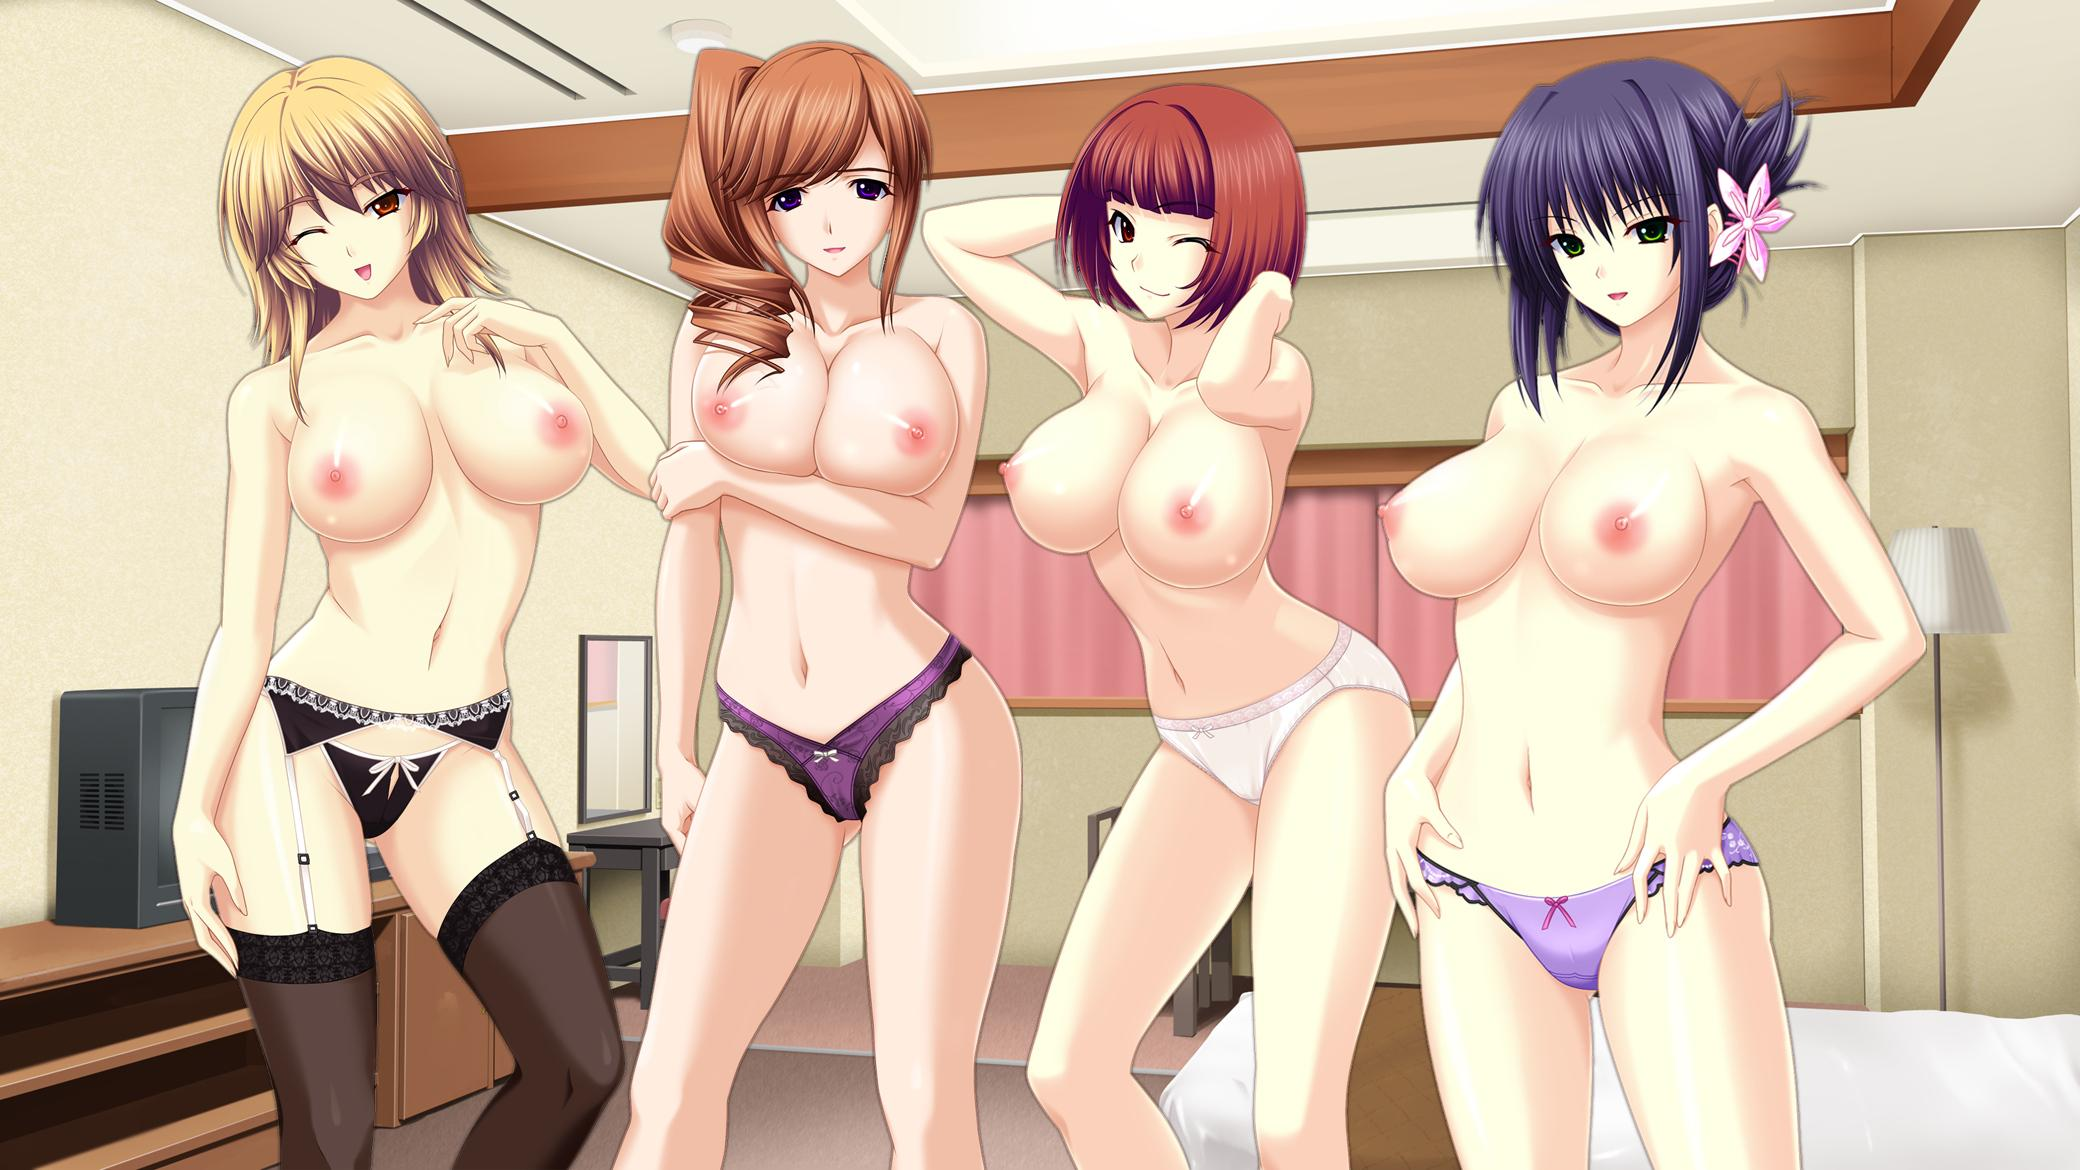 Hot lesbian anime images erotic galleries